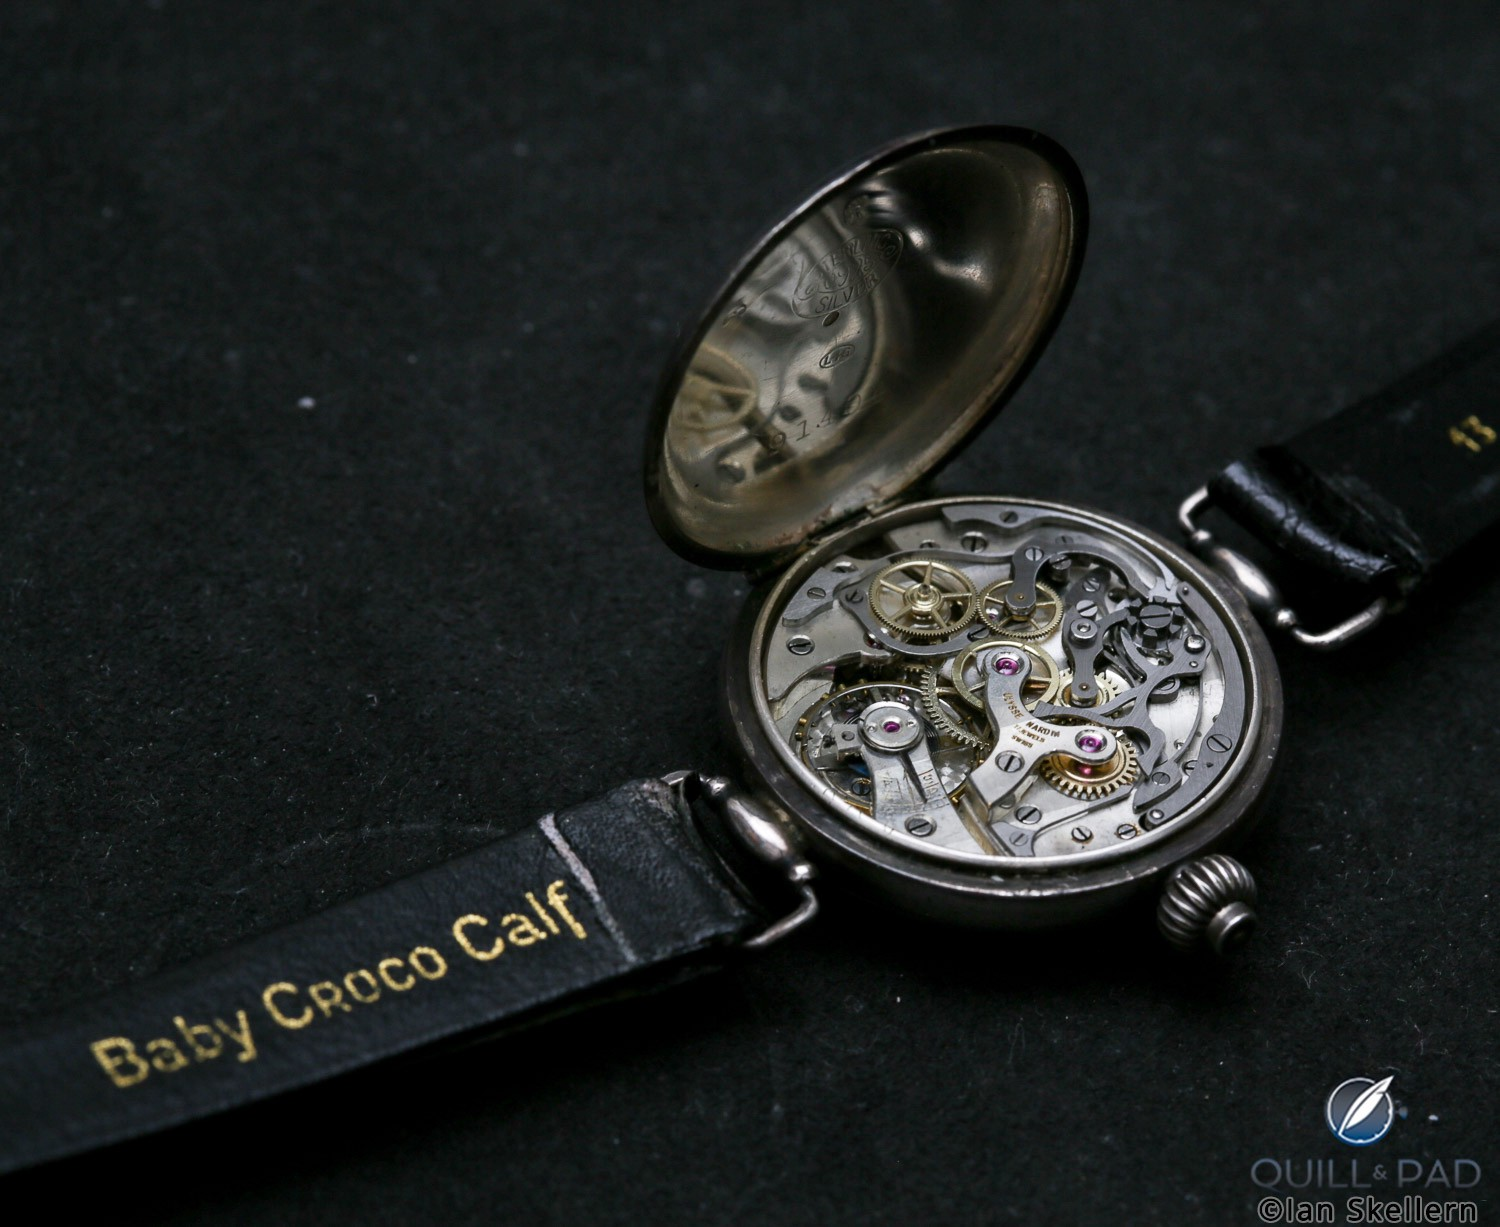 Movement side of an early Ulysse Nardin chronograph with enamel dial from Gerd-Rüdiger Lang's extensive chronograph collection